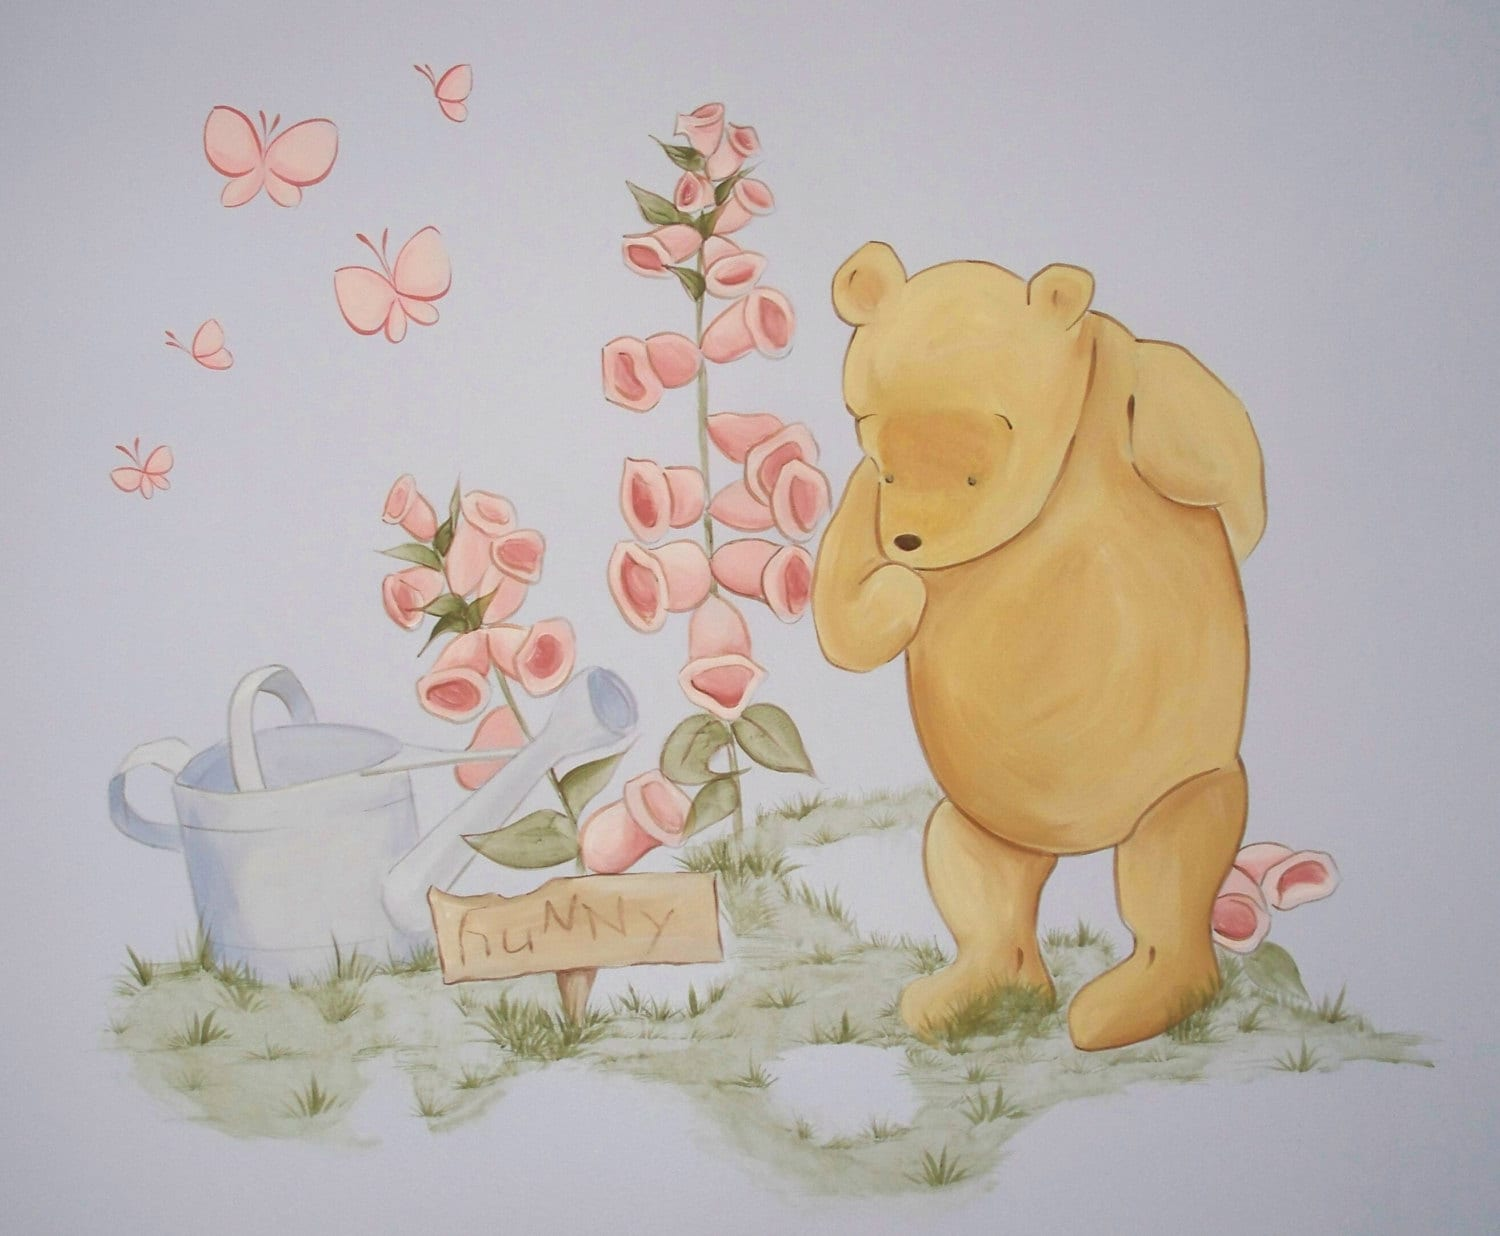 Estimate for hand painted classic pooh nursery mural please for Classic pooh nursery mural